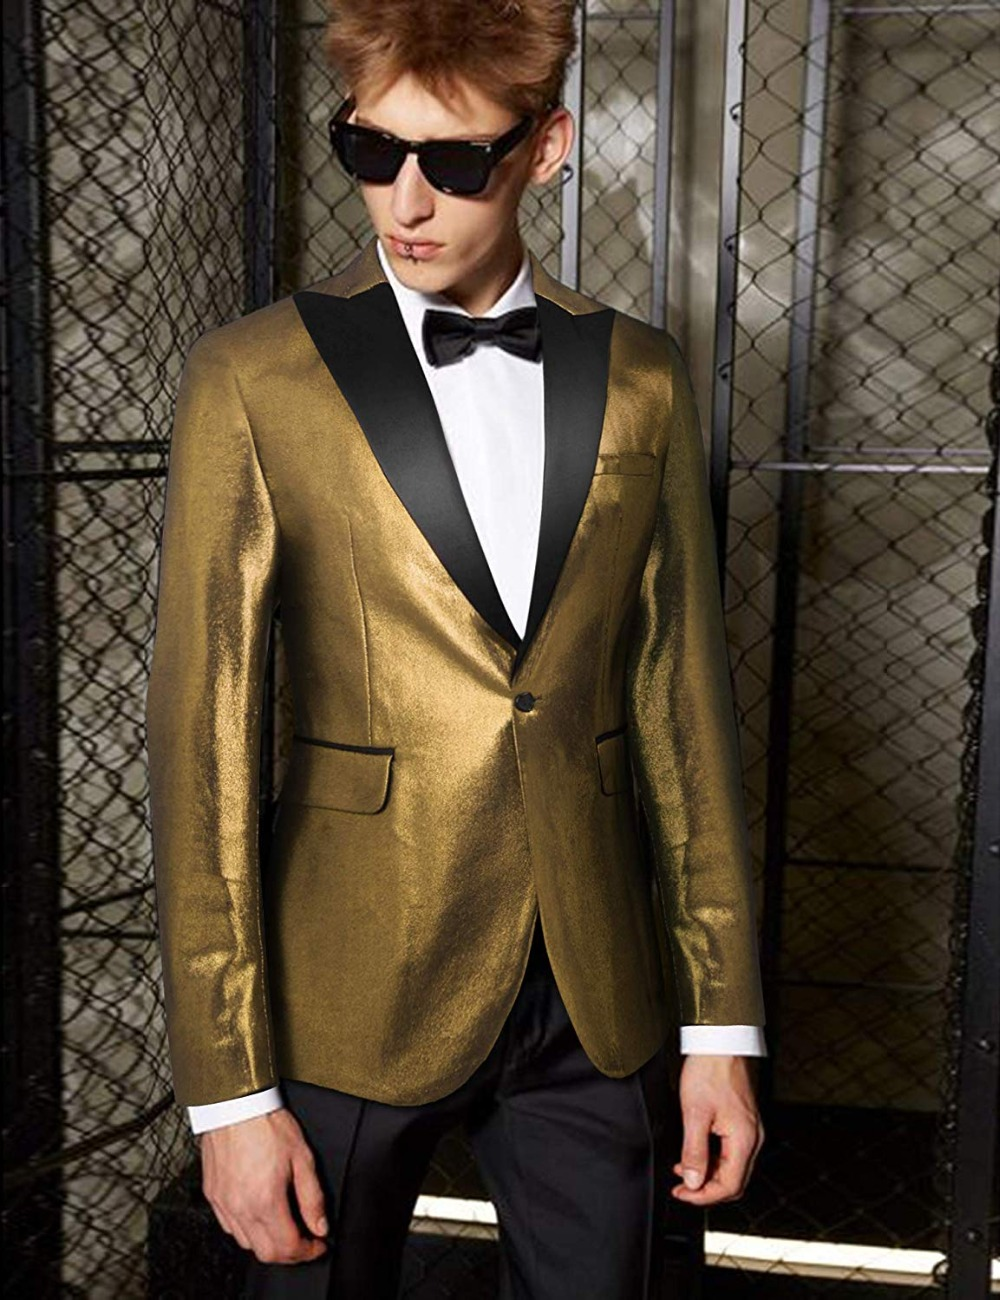 Men's Suit Fashion Suit Jacket Blazer For Weddings Prom Party Dinner Tuxedo One Pieces Jacket For Stage Wedding Shiny Costume